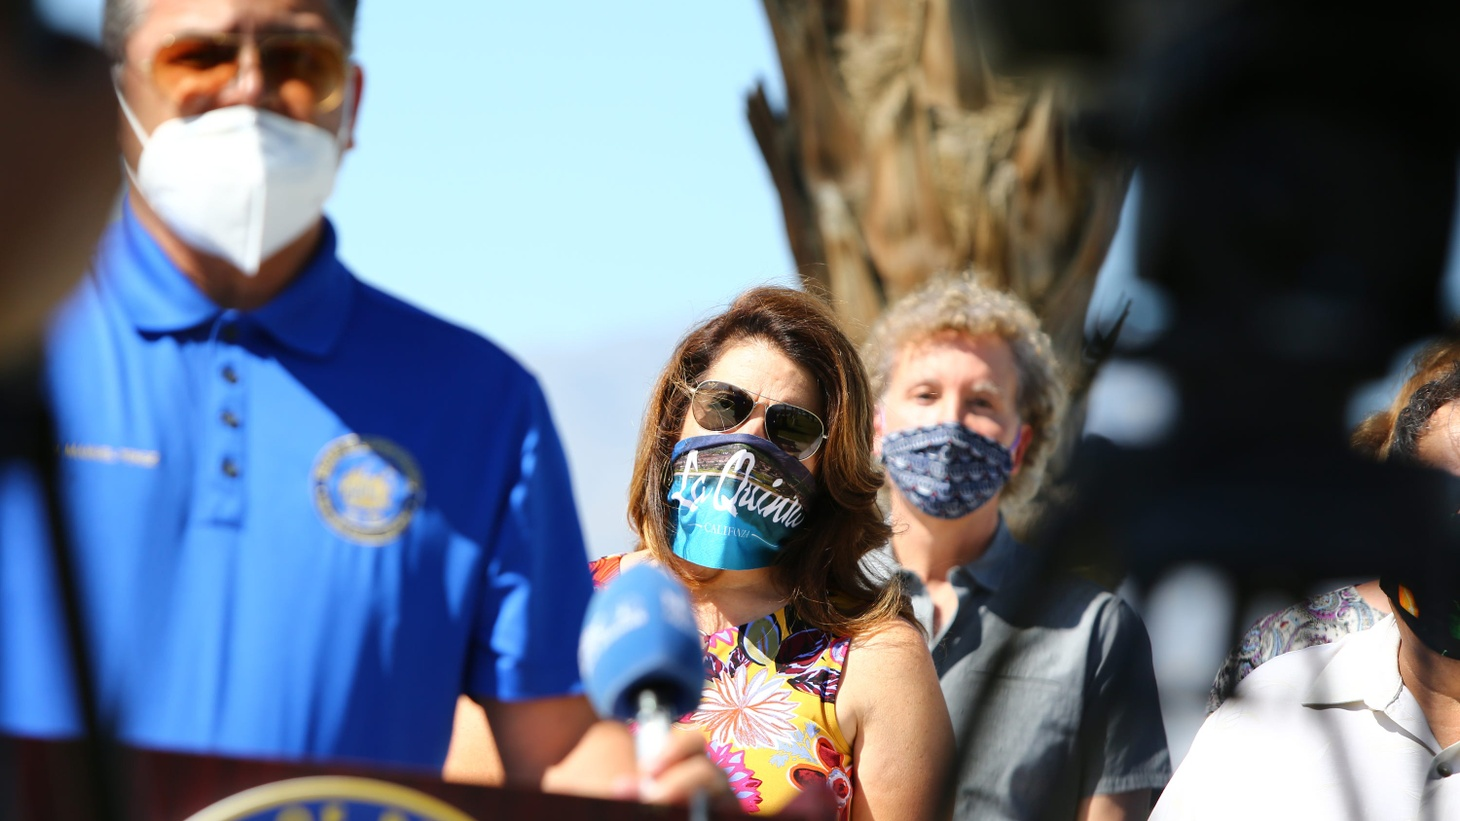 Riverside County Supervisor V. Manuel Perez, left, City of La Quinta Mayor Linda Evans, and City of Palm Springs Mayor Geoff Kors were tested for coronavirus at the Riverside County Fairgrounds in Indio, Calif., on May 27, 2020. It was part of a campaign to encourage the public to be tested.